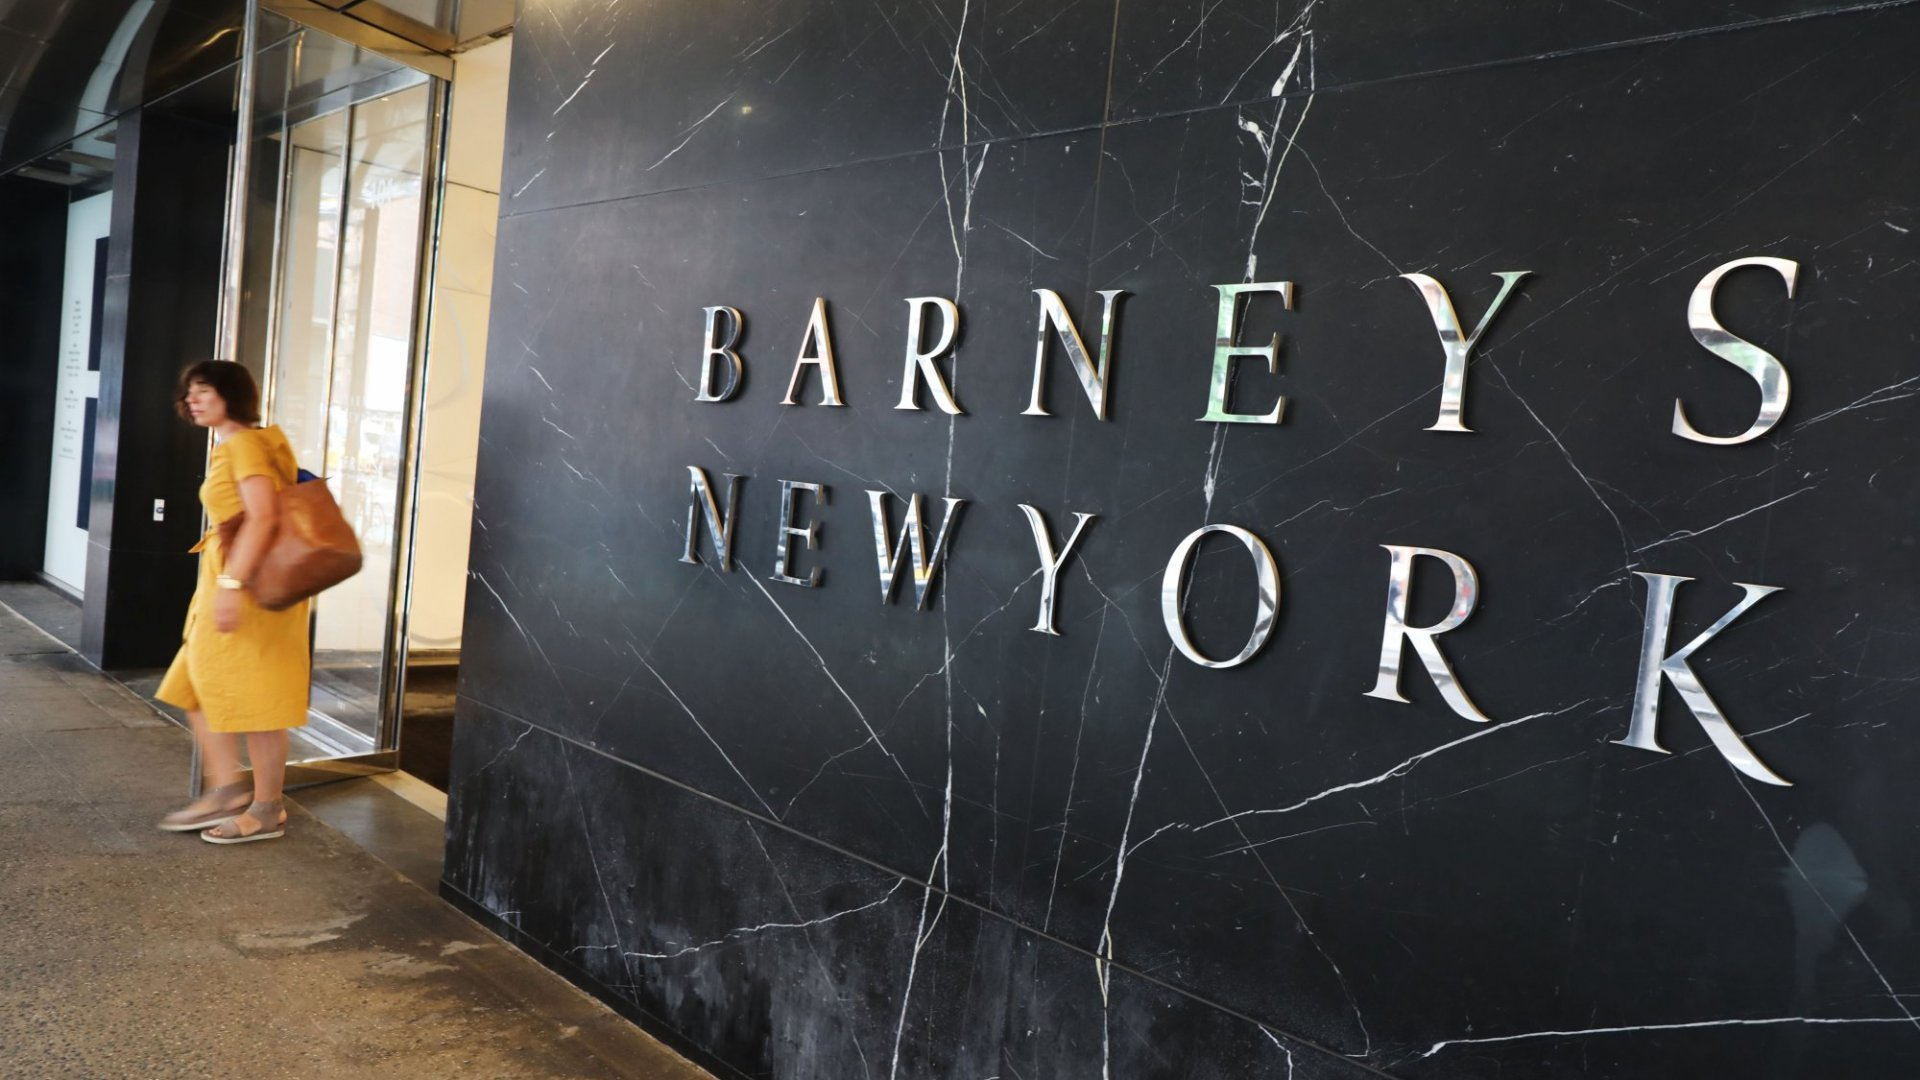 Stay Paranoid, Expect Obsolescence, and Other Powerful Lessons From the Collapse of Barney's